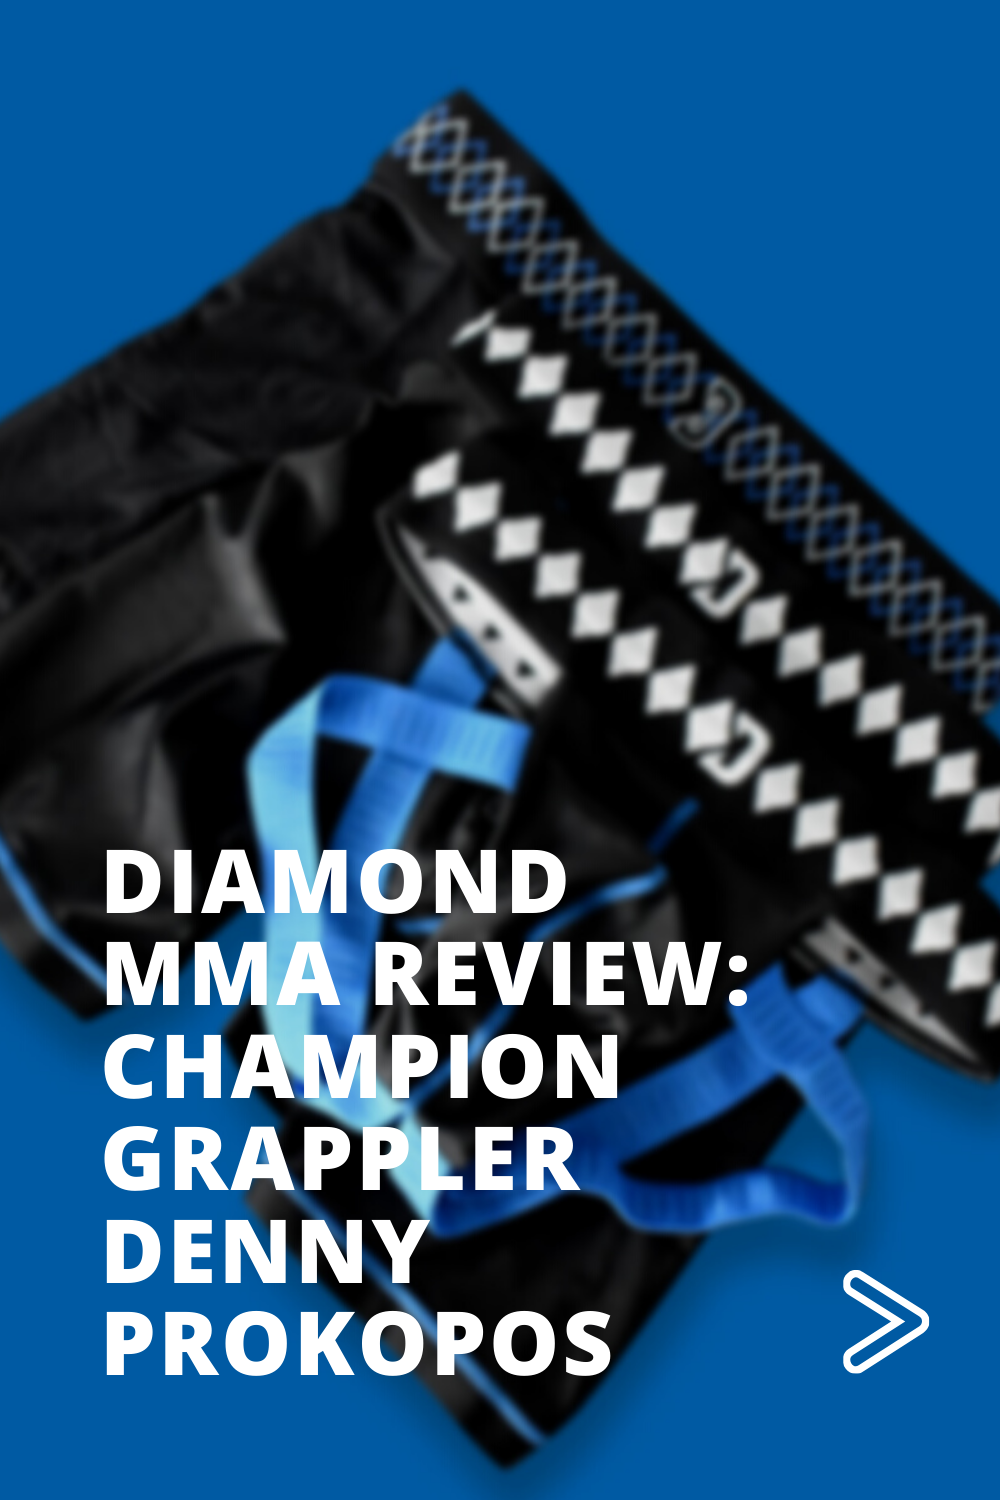 Diamond MMA Review: Champion Grappler Denny Prokopos